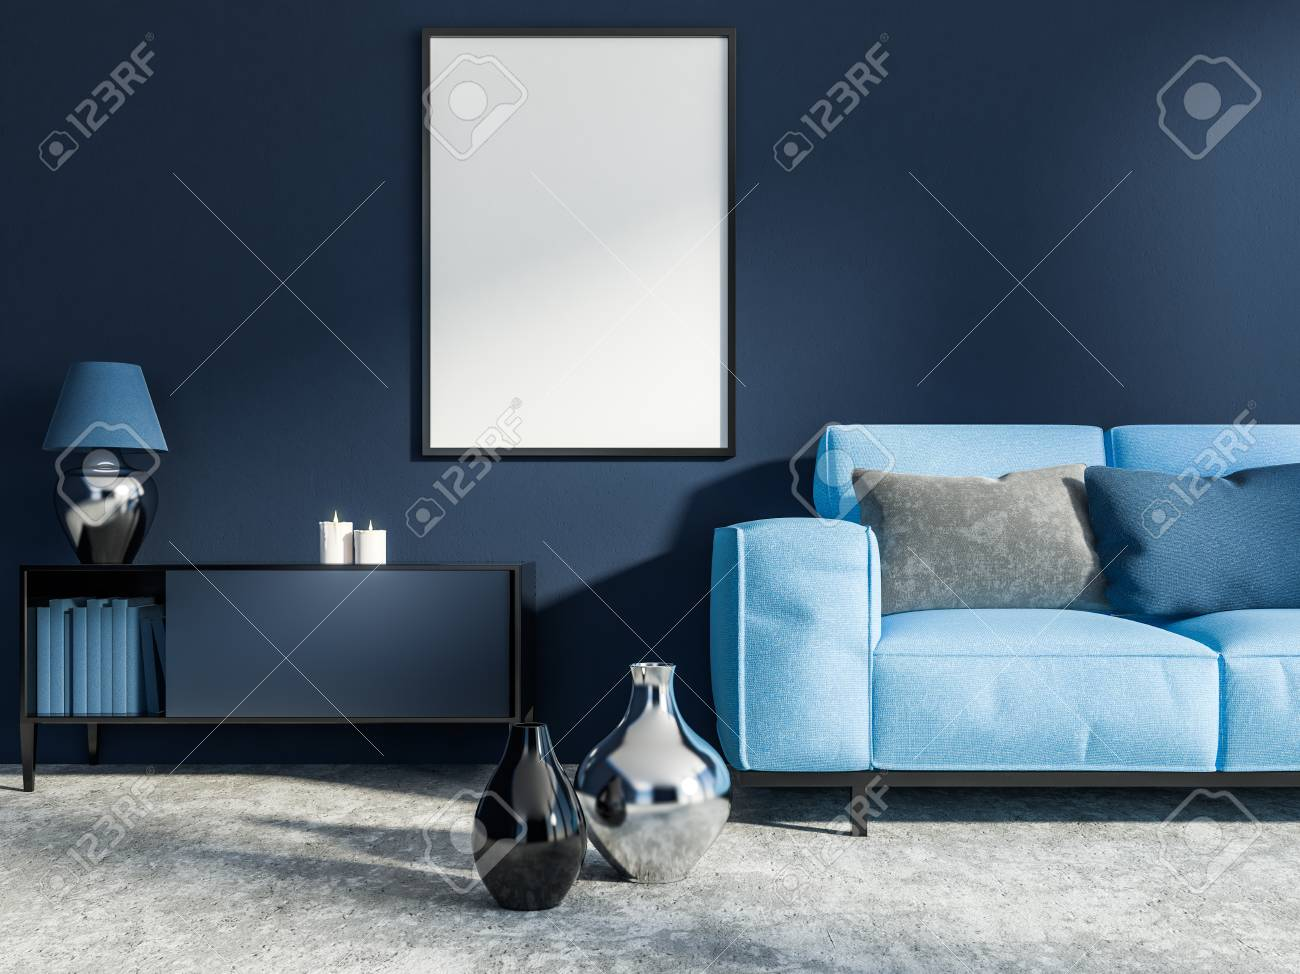 Miraculous Interior Of Living Room With Dark Blue Walls Concrete Floor Pdpeps Interior Chair Design Pdpepsorg